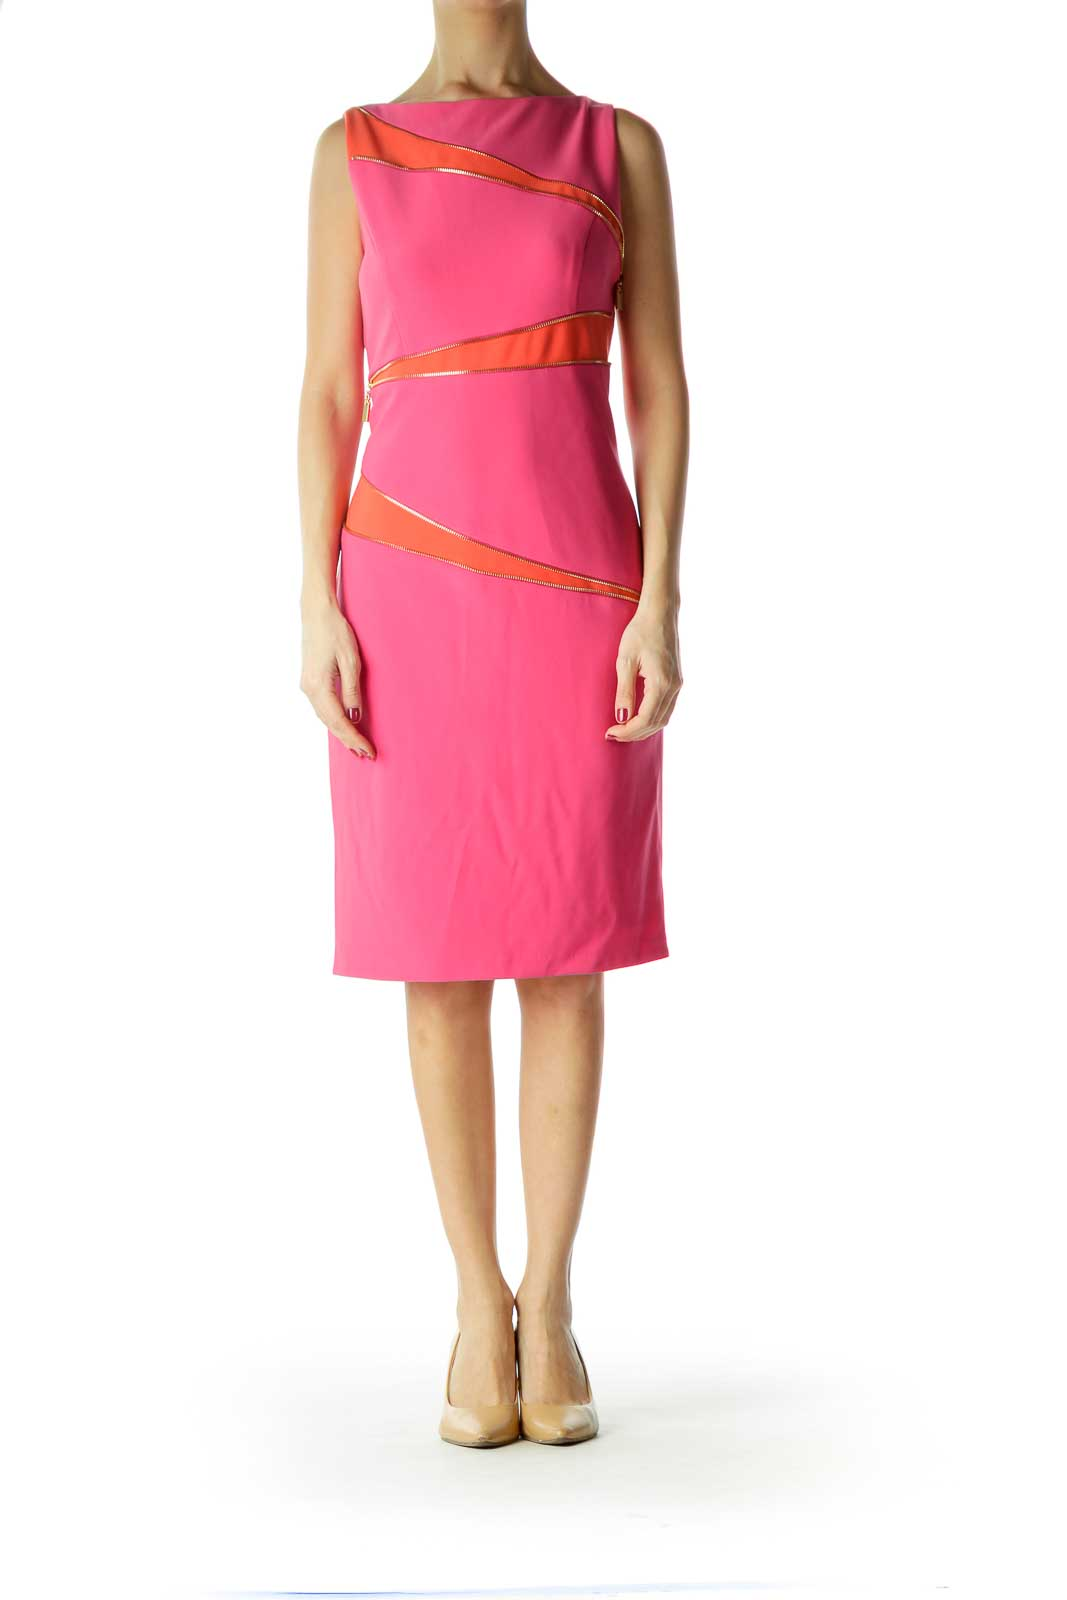 Pink Orange Work Dress with Diagonal Zippers